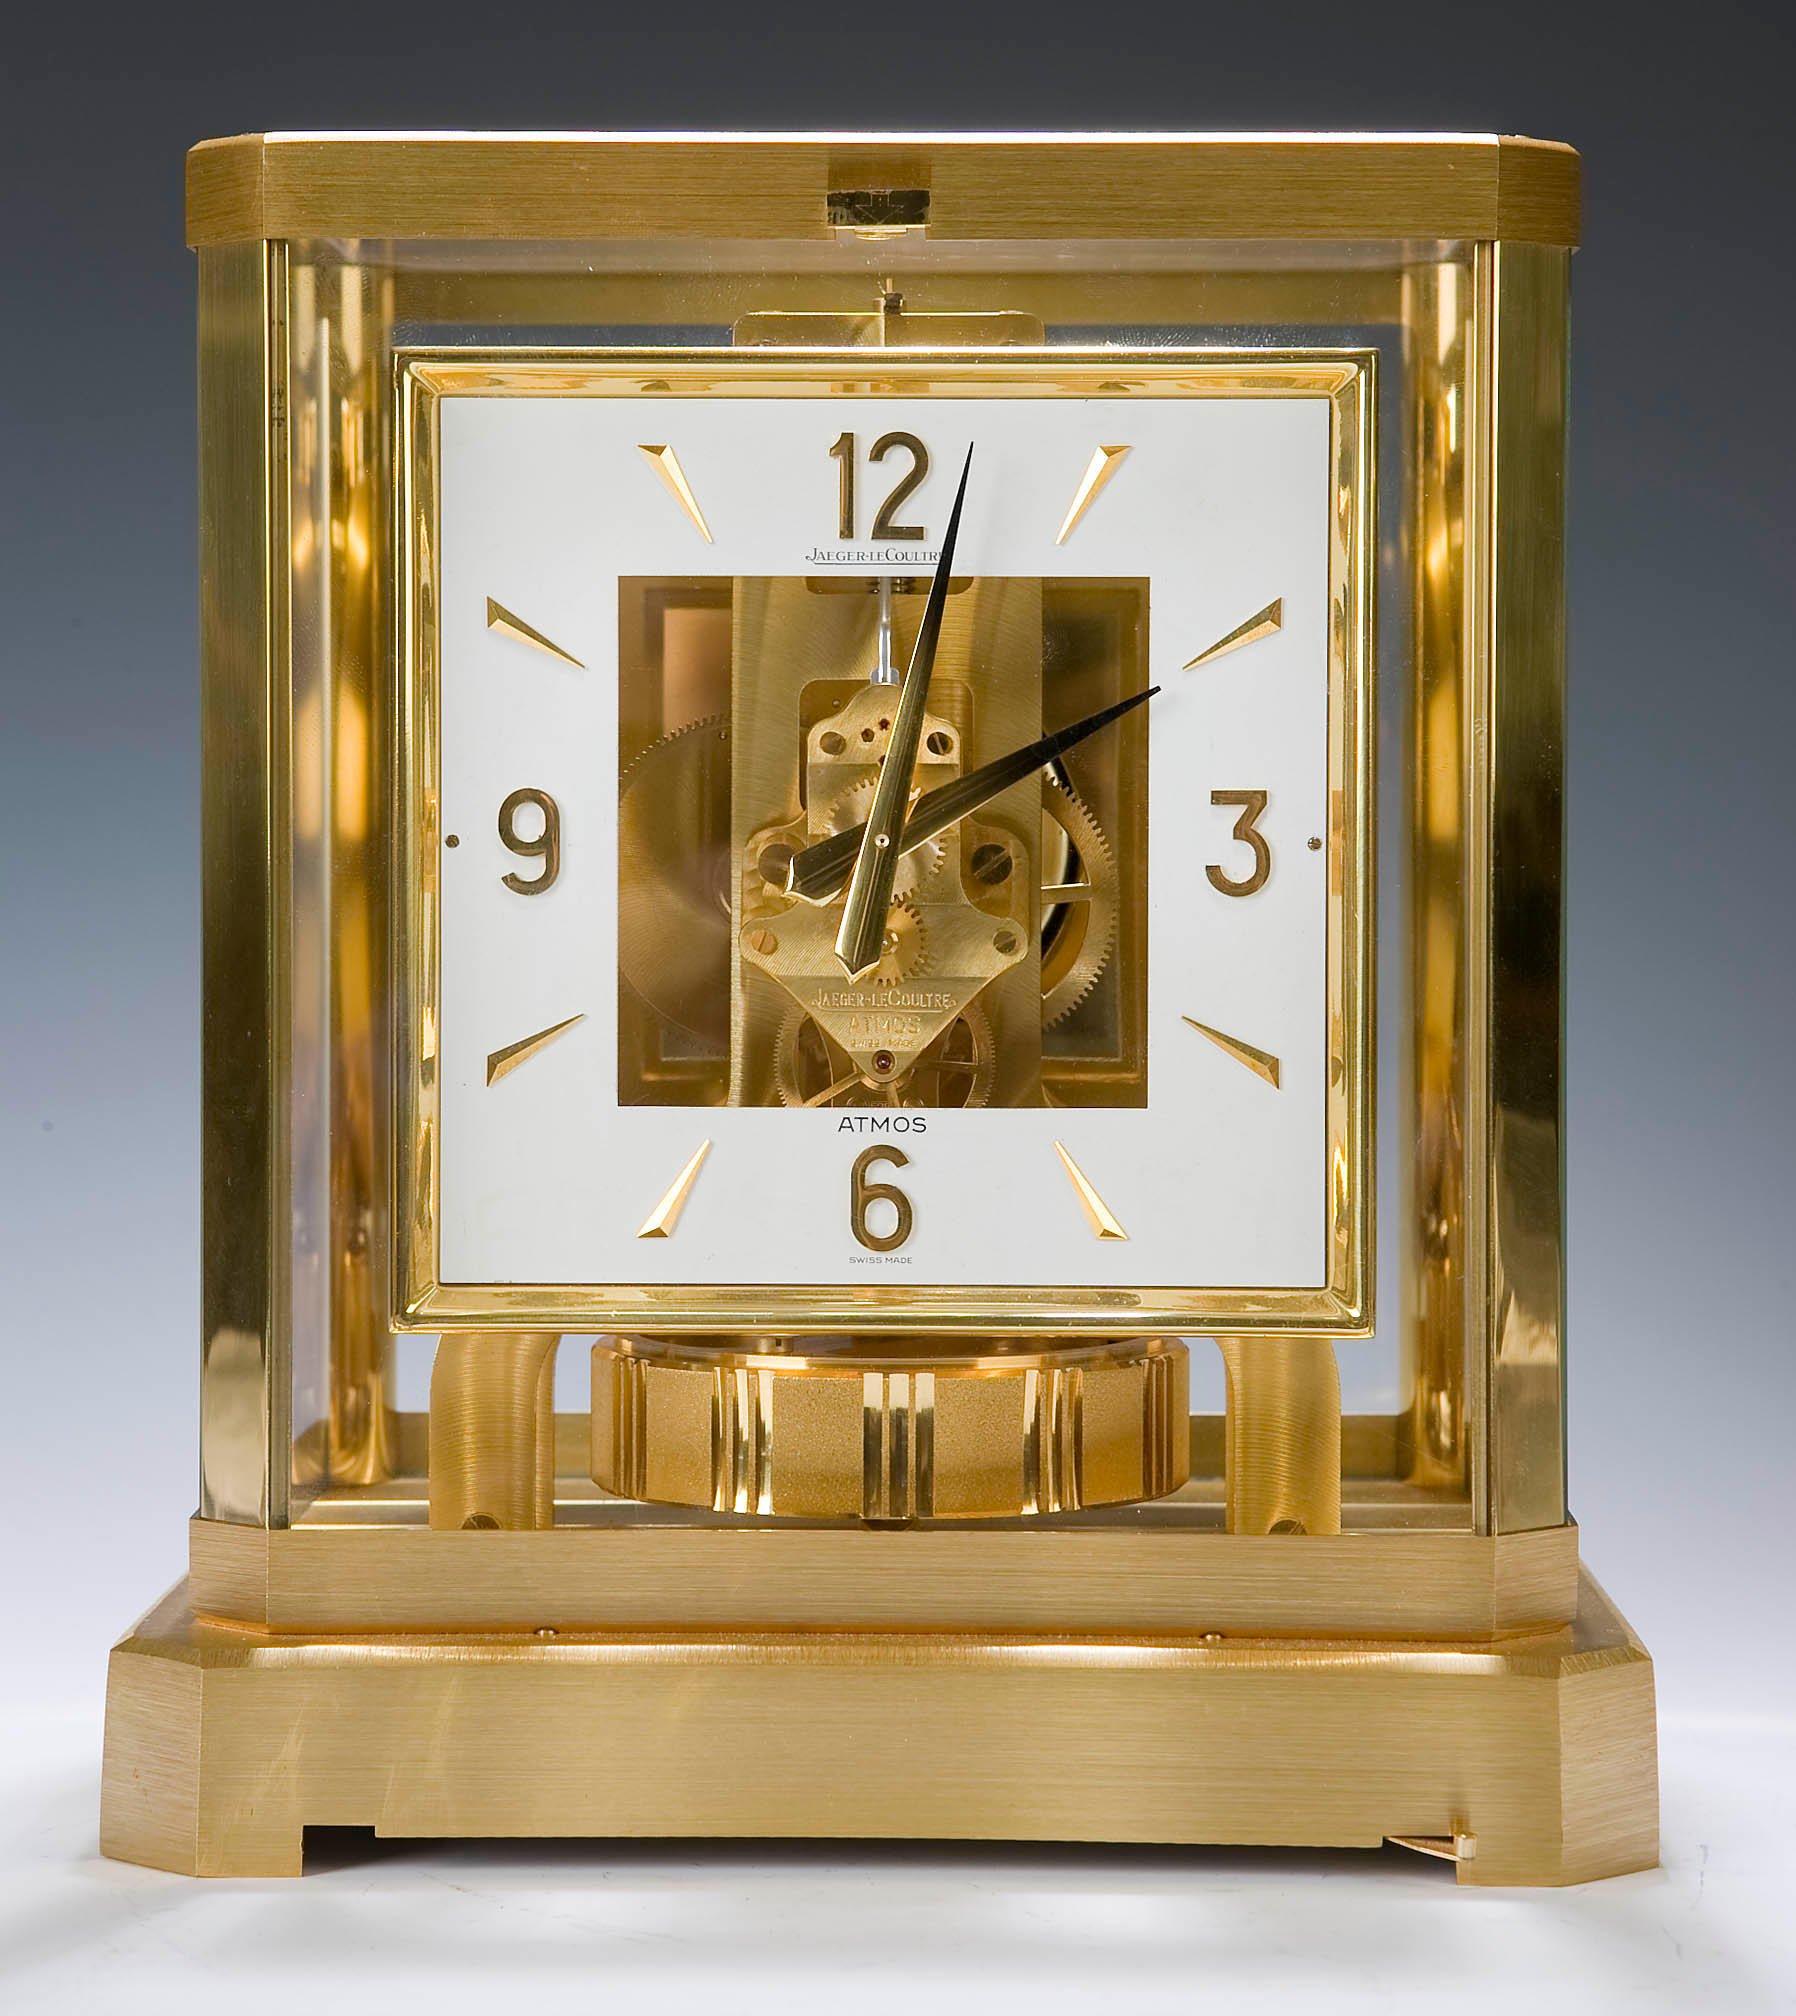 JAEGER LE COULTRE ATMOS CLOCK NEW REMOVEABLE 528-8 STANDARD FRONT GLASS